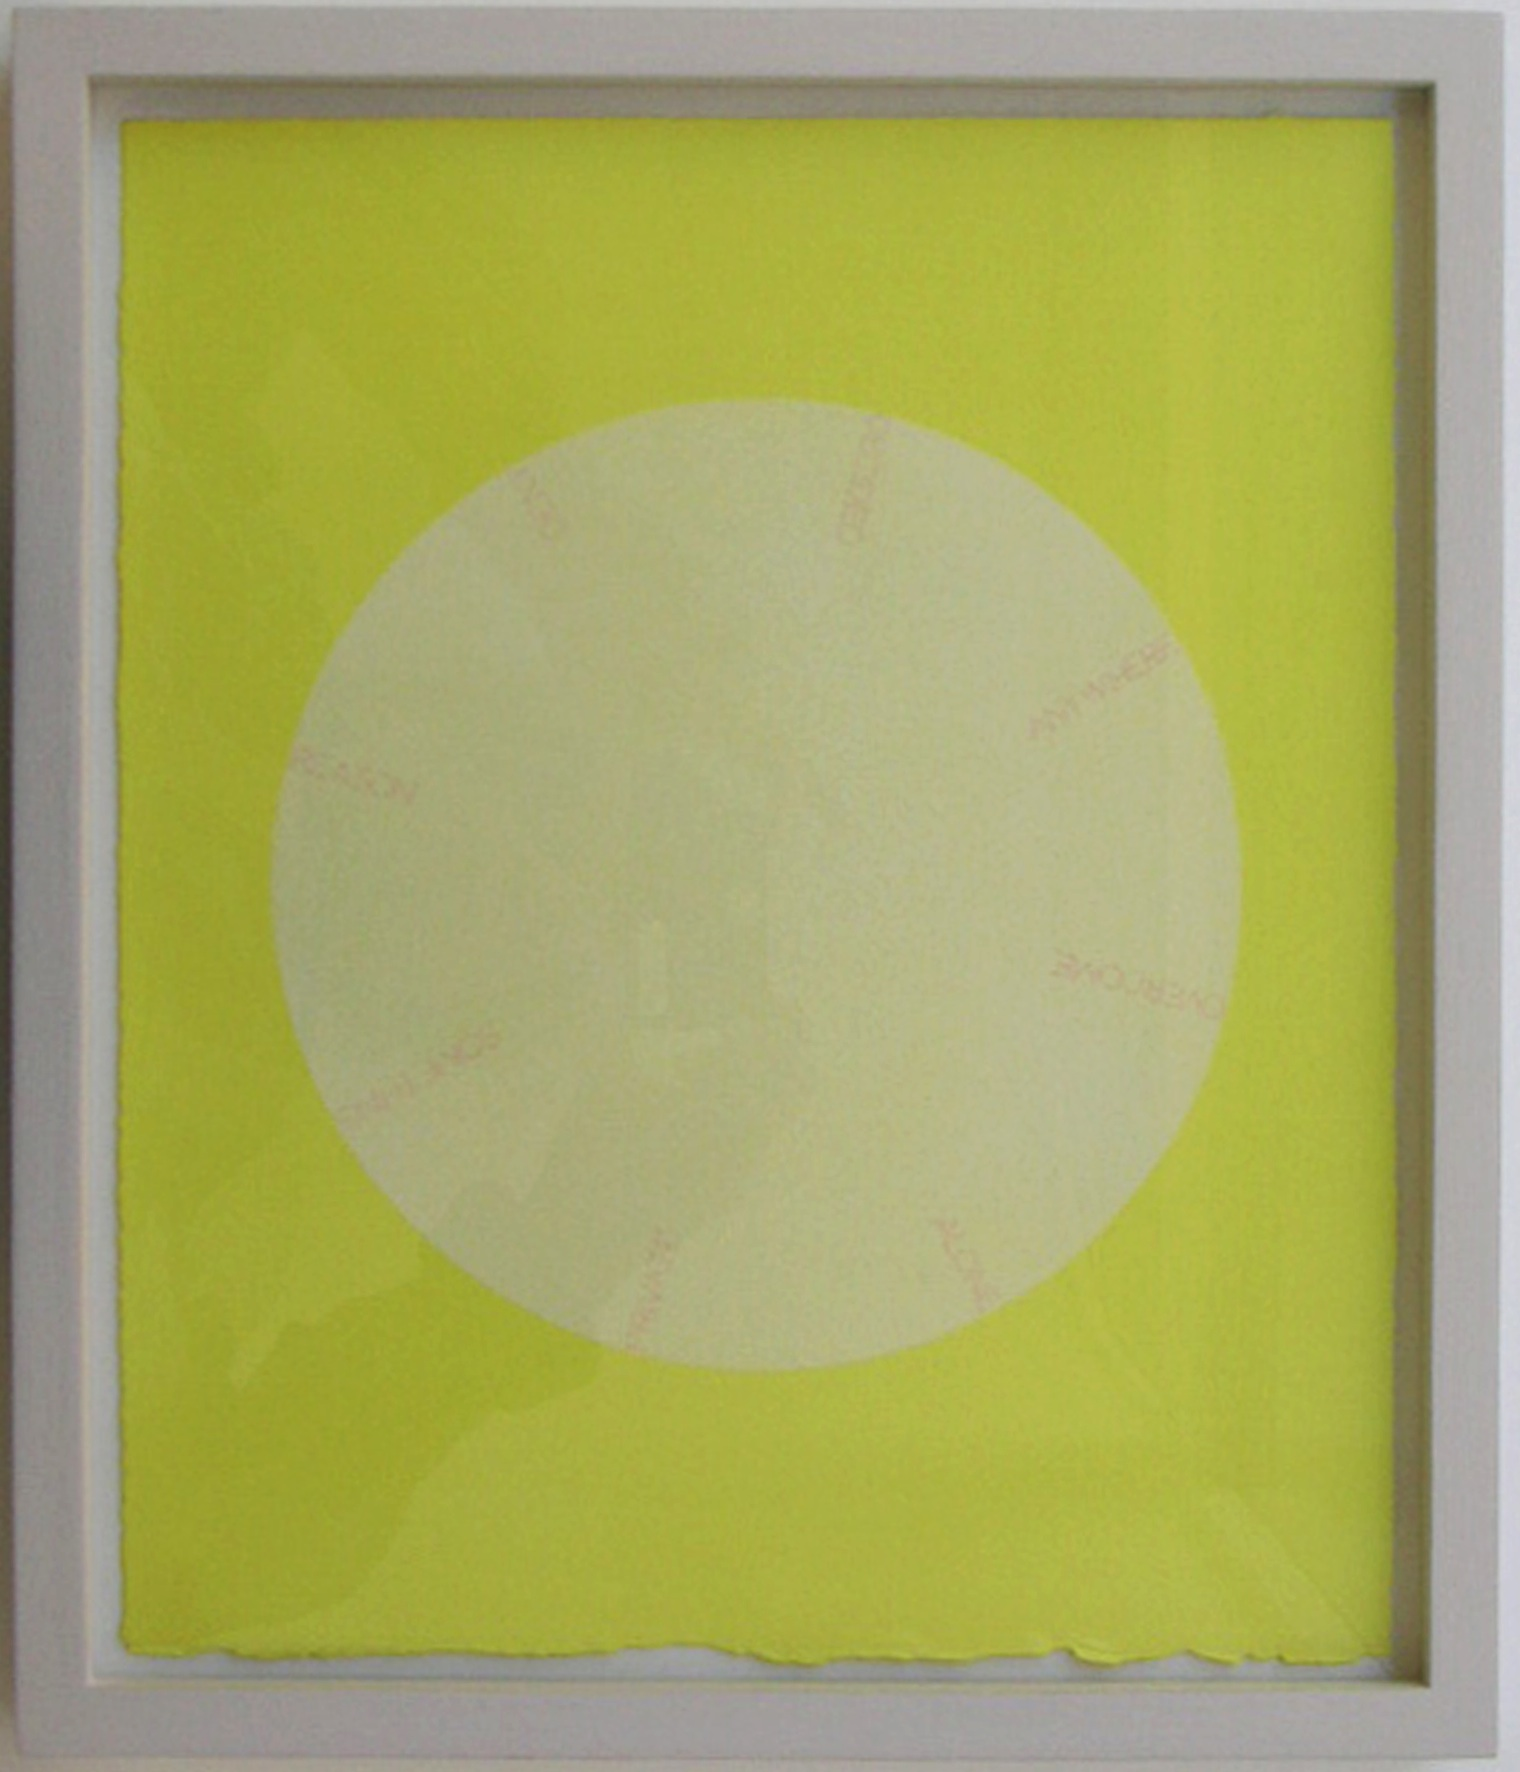 Robert Barry,  Untitled (lemon),  2004. Acryl und Tinte auf Papier. 32 x 26 cm.